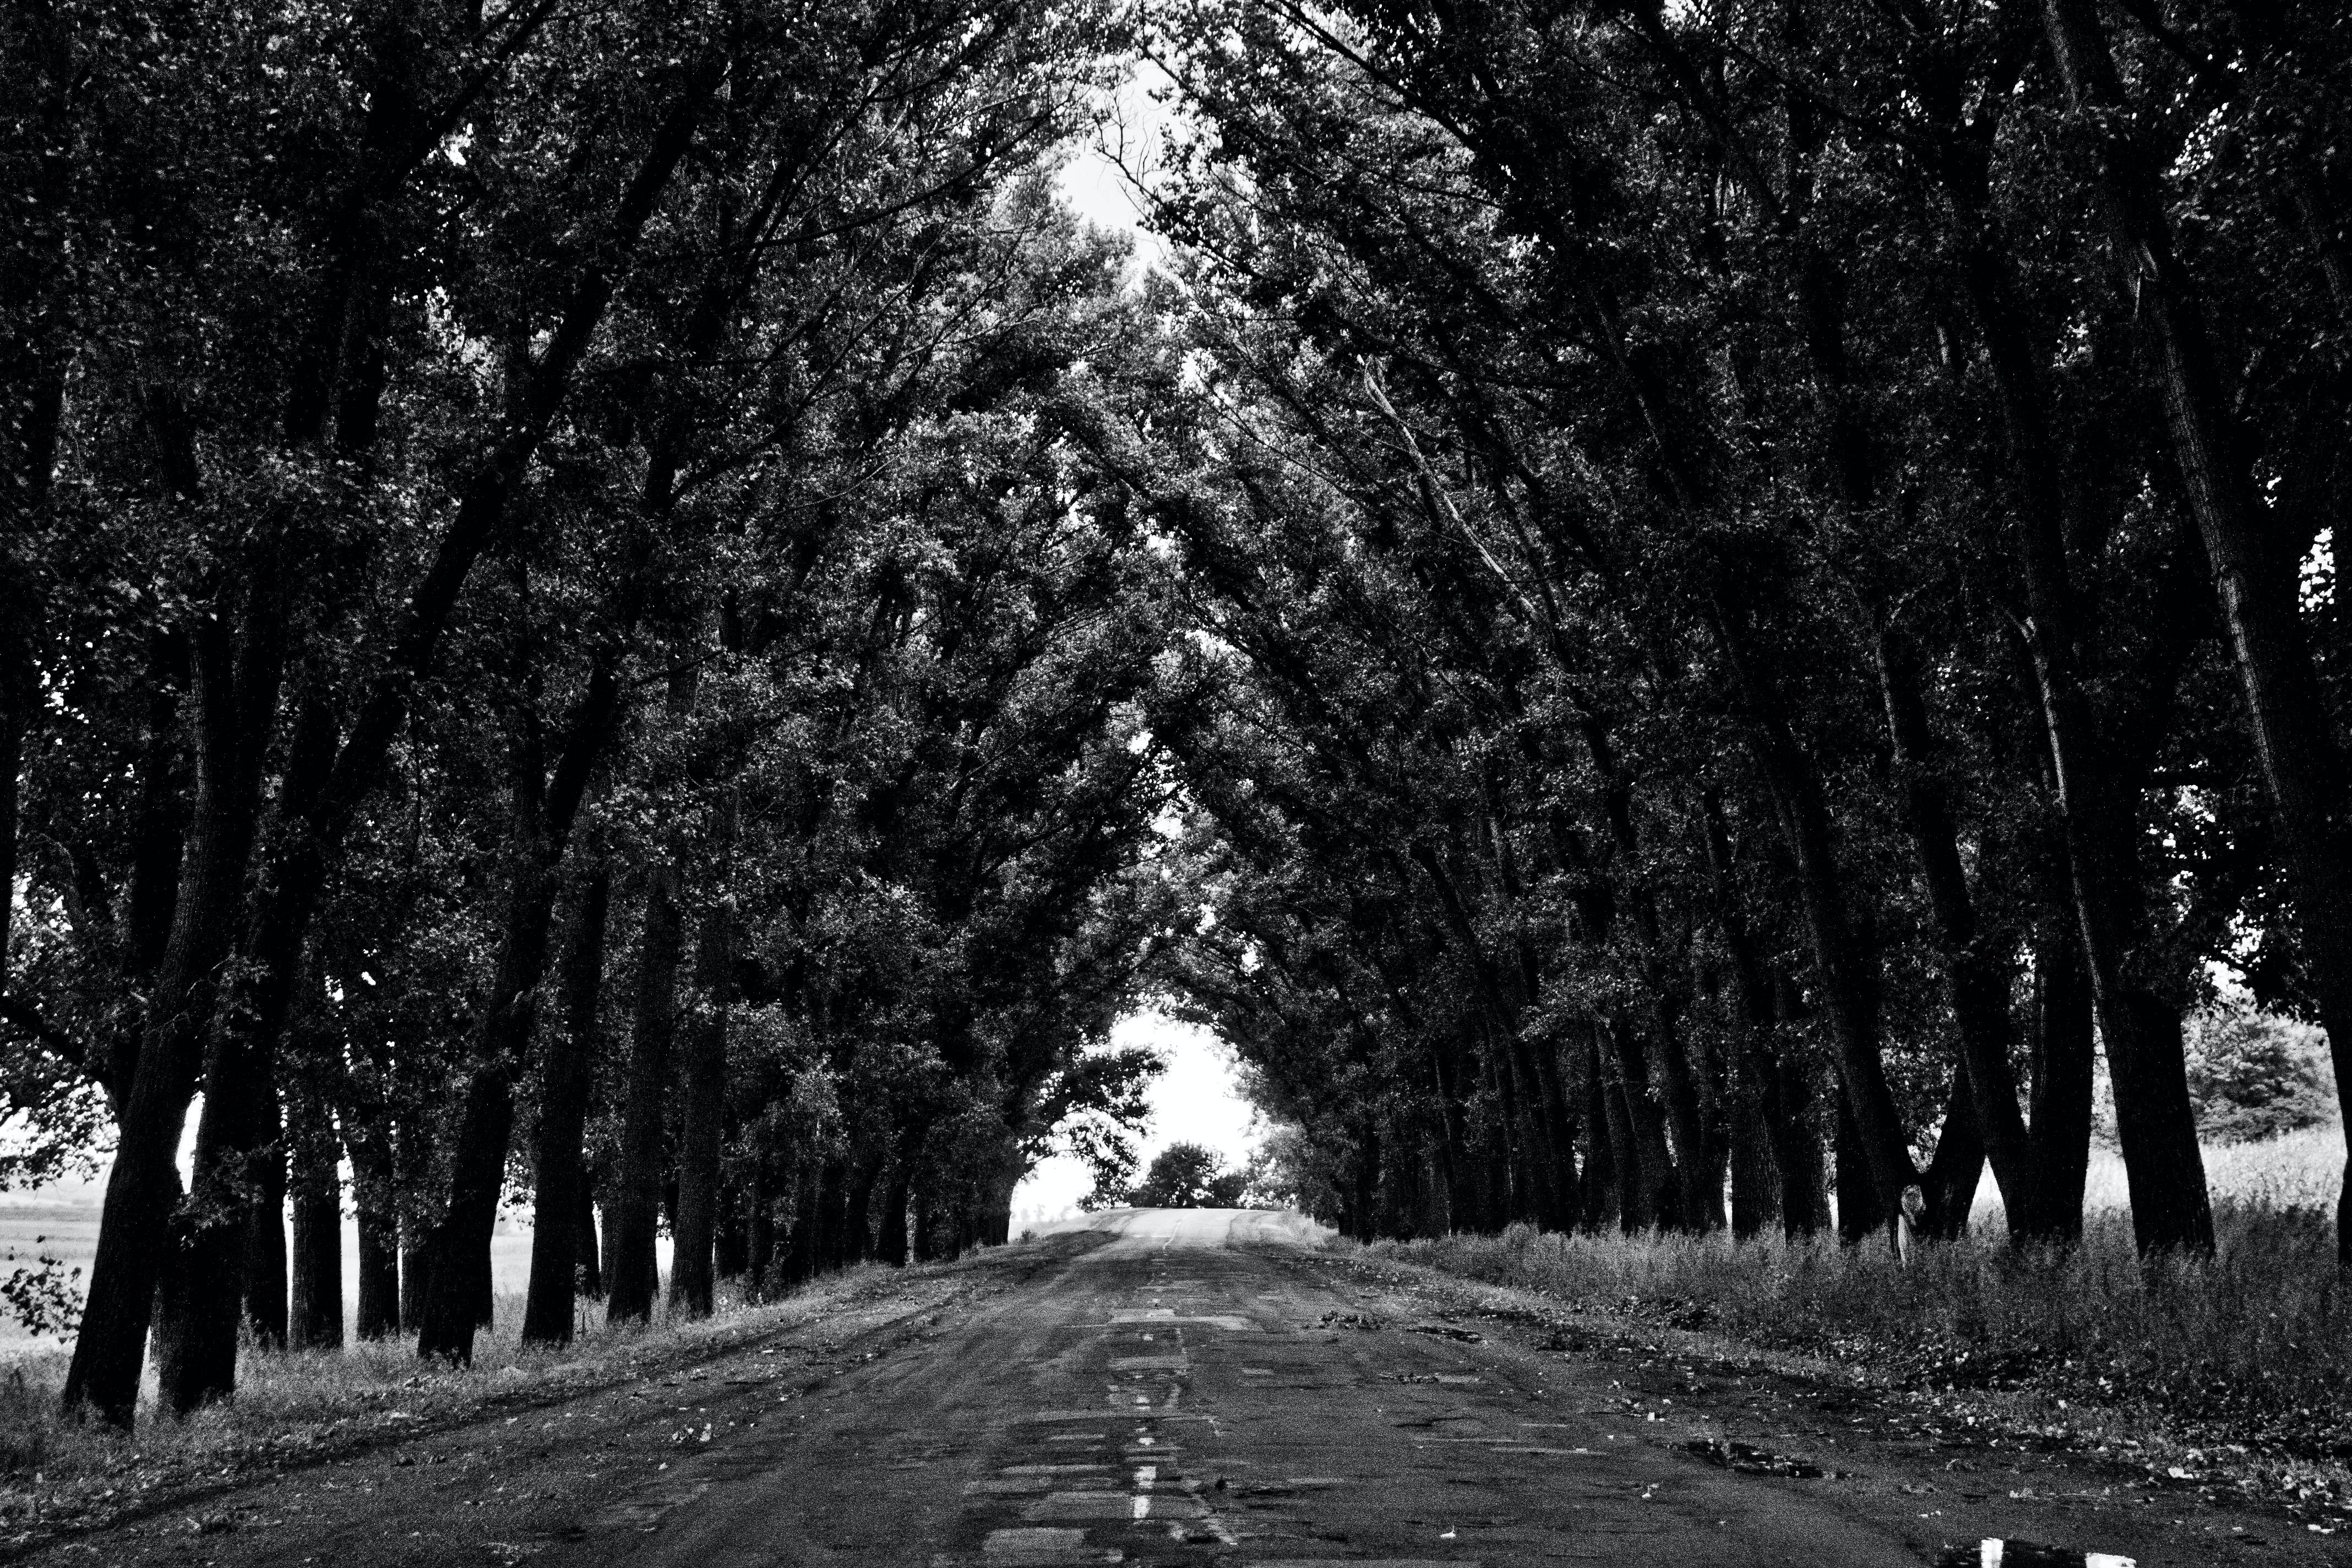 Black and white shot of worn down road with symmetrical tree archway